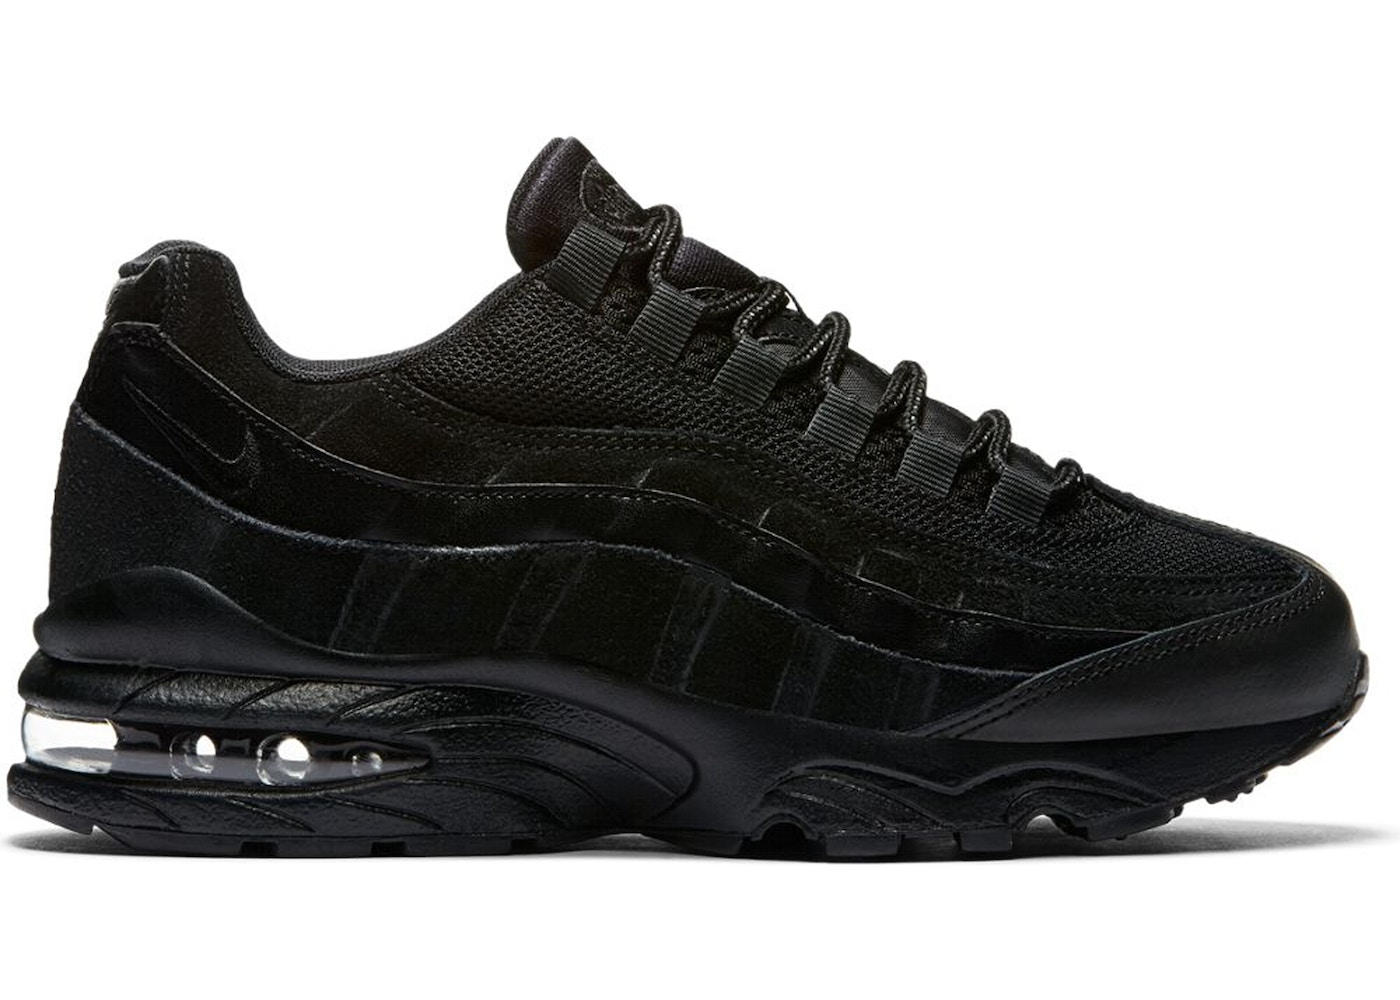 newest 46446 dc858 Air Max 95 Black Suede (GS) - 307565-055